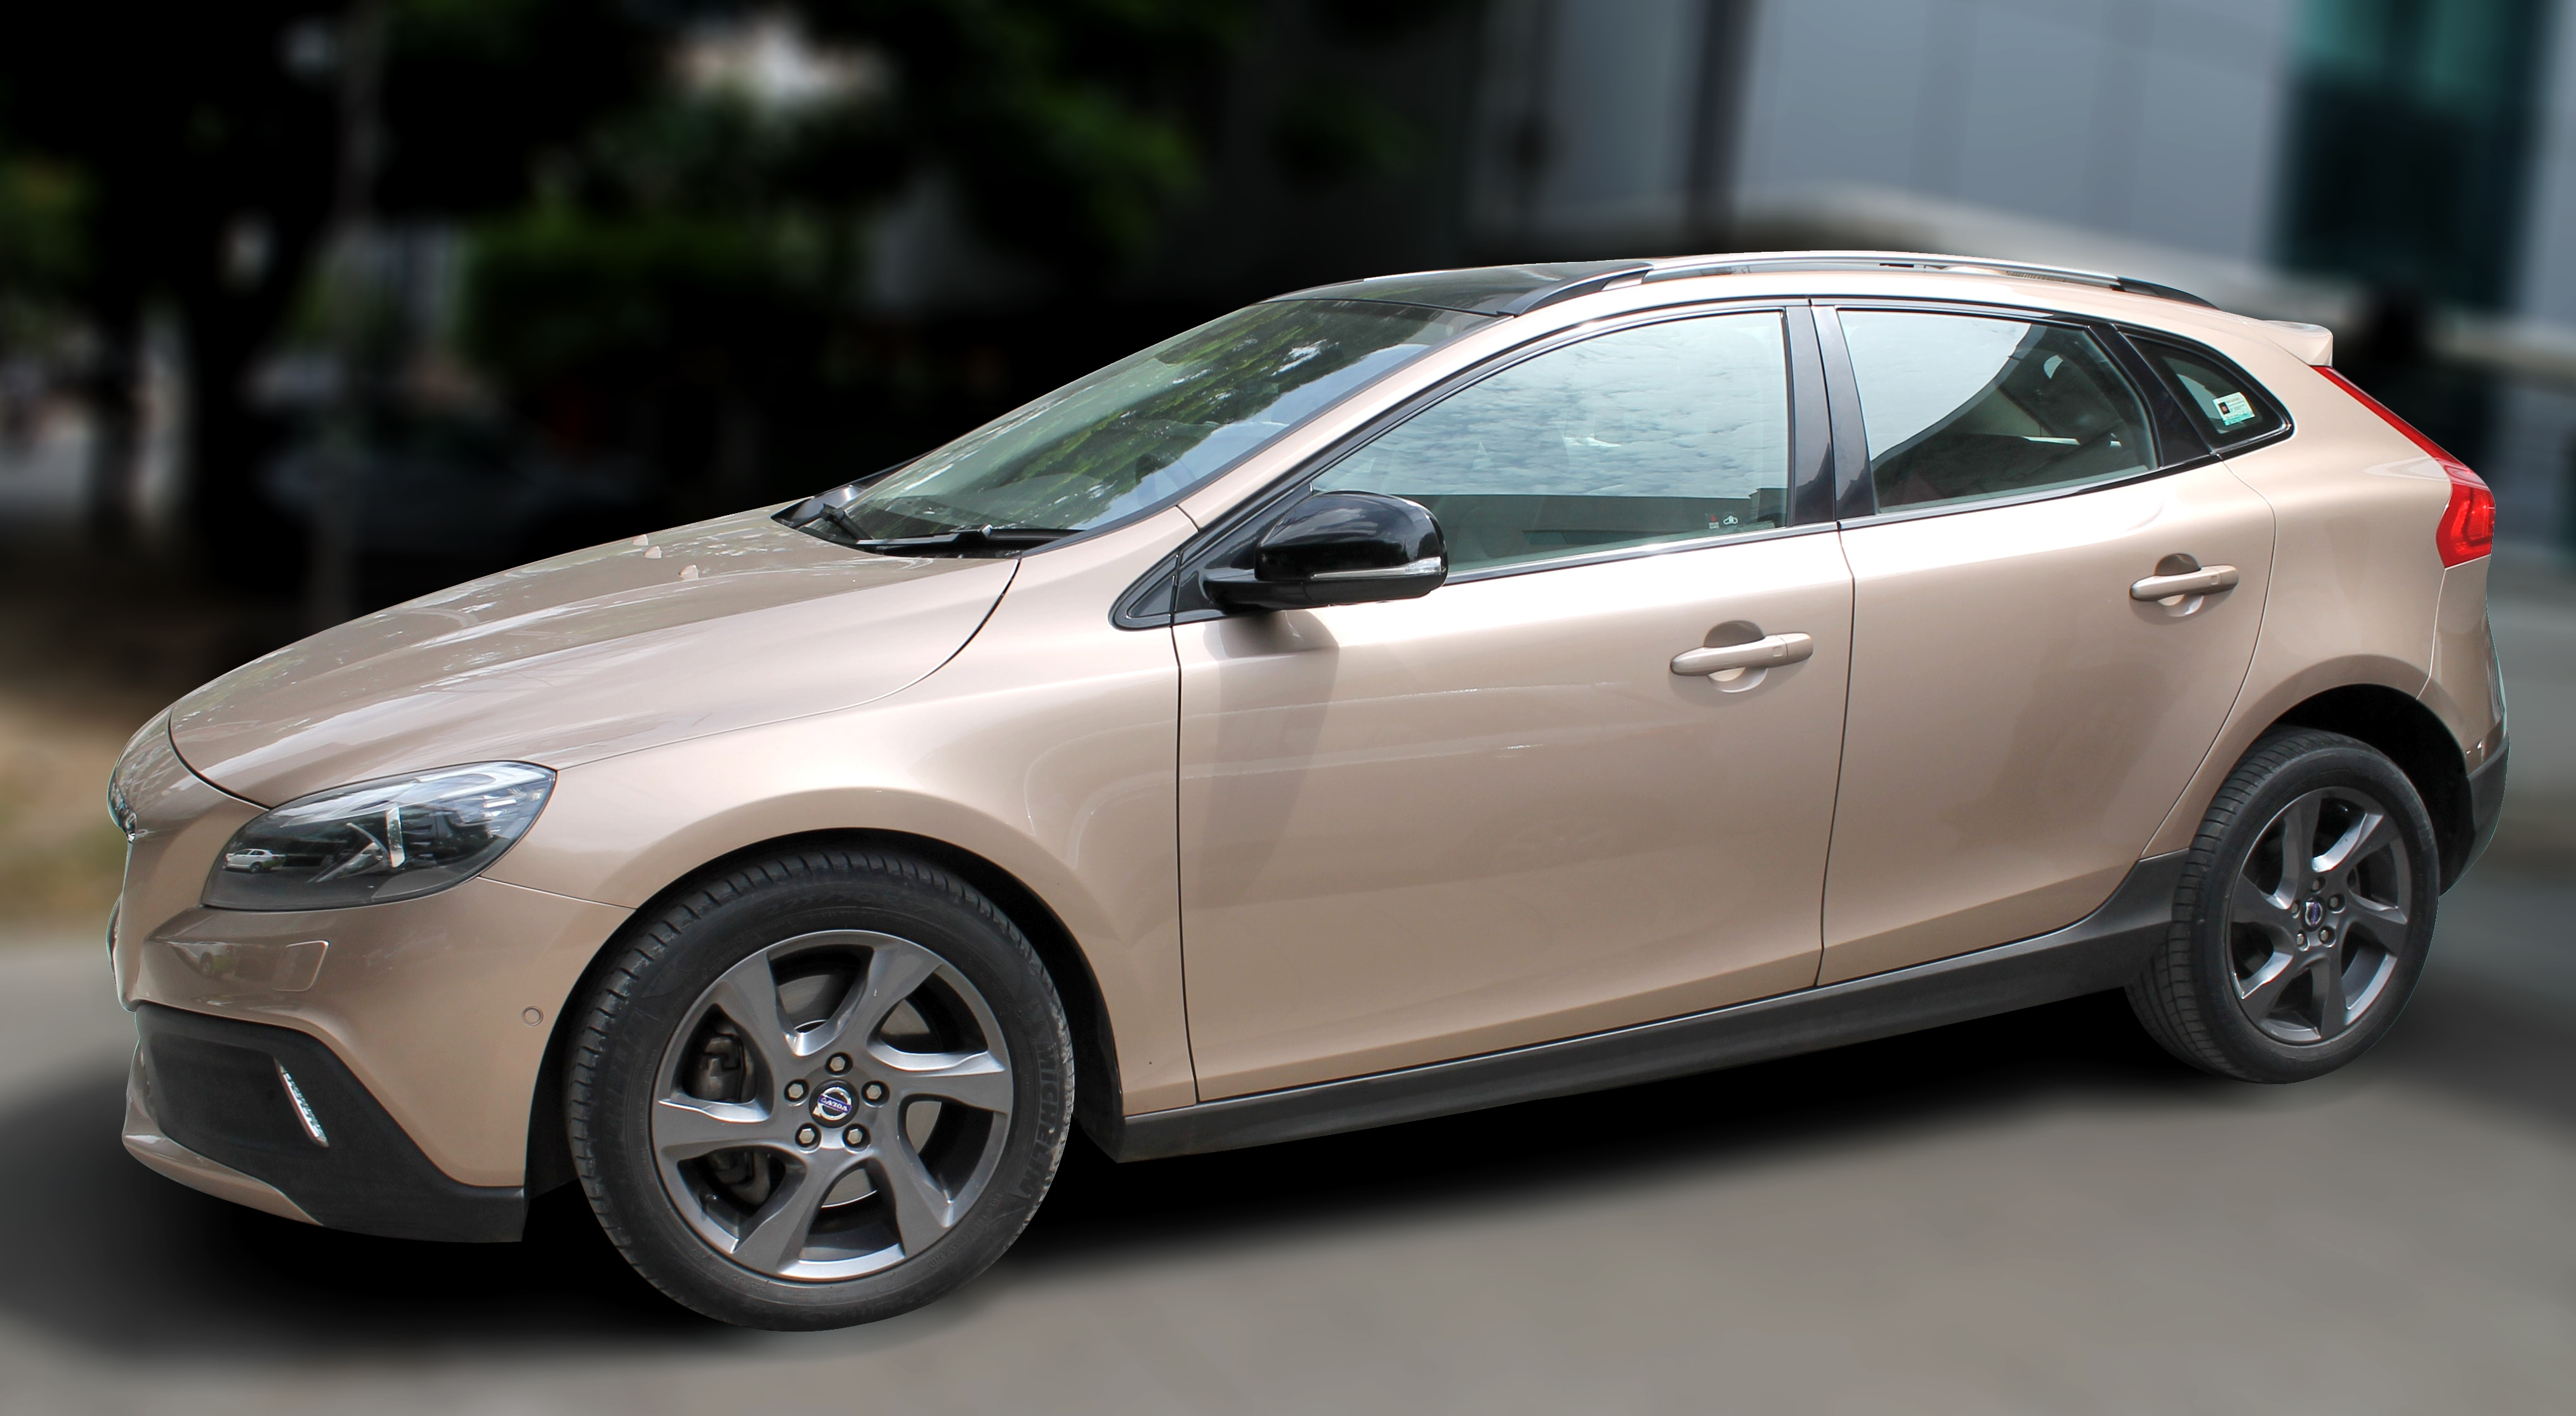 VOLVO V 40 CROSS COUNTRY D3 BSIV, (RAW COPPER COLOR, DIESEL) 2014 model done only 45, 000kms in absolute mint condition... buy now and get one year #service pack from us. For further info call 7569696666